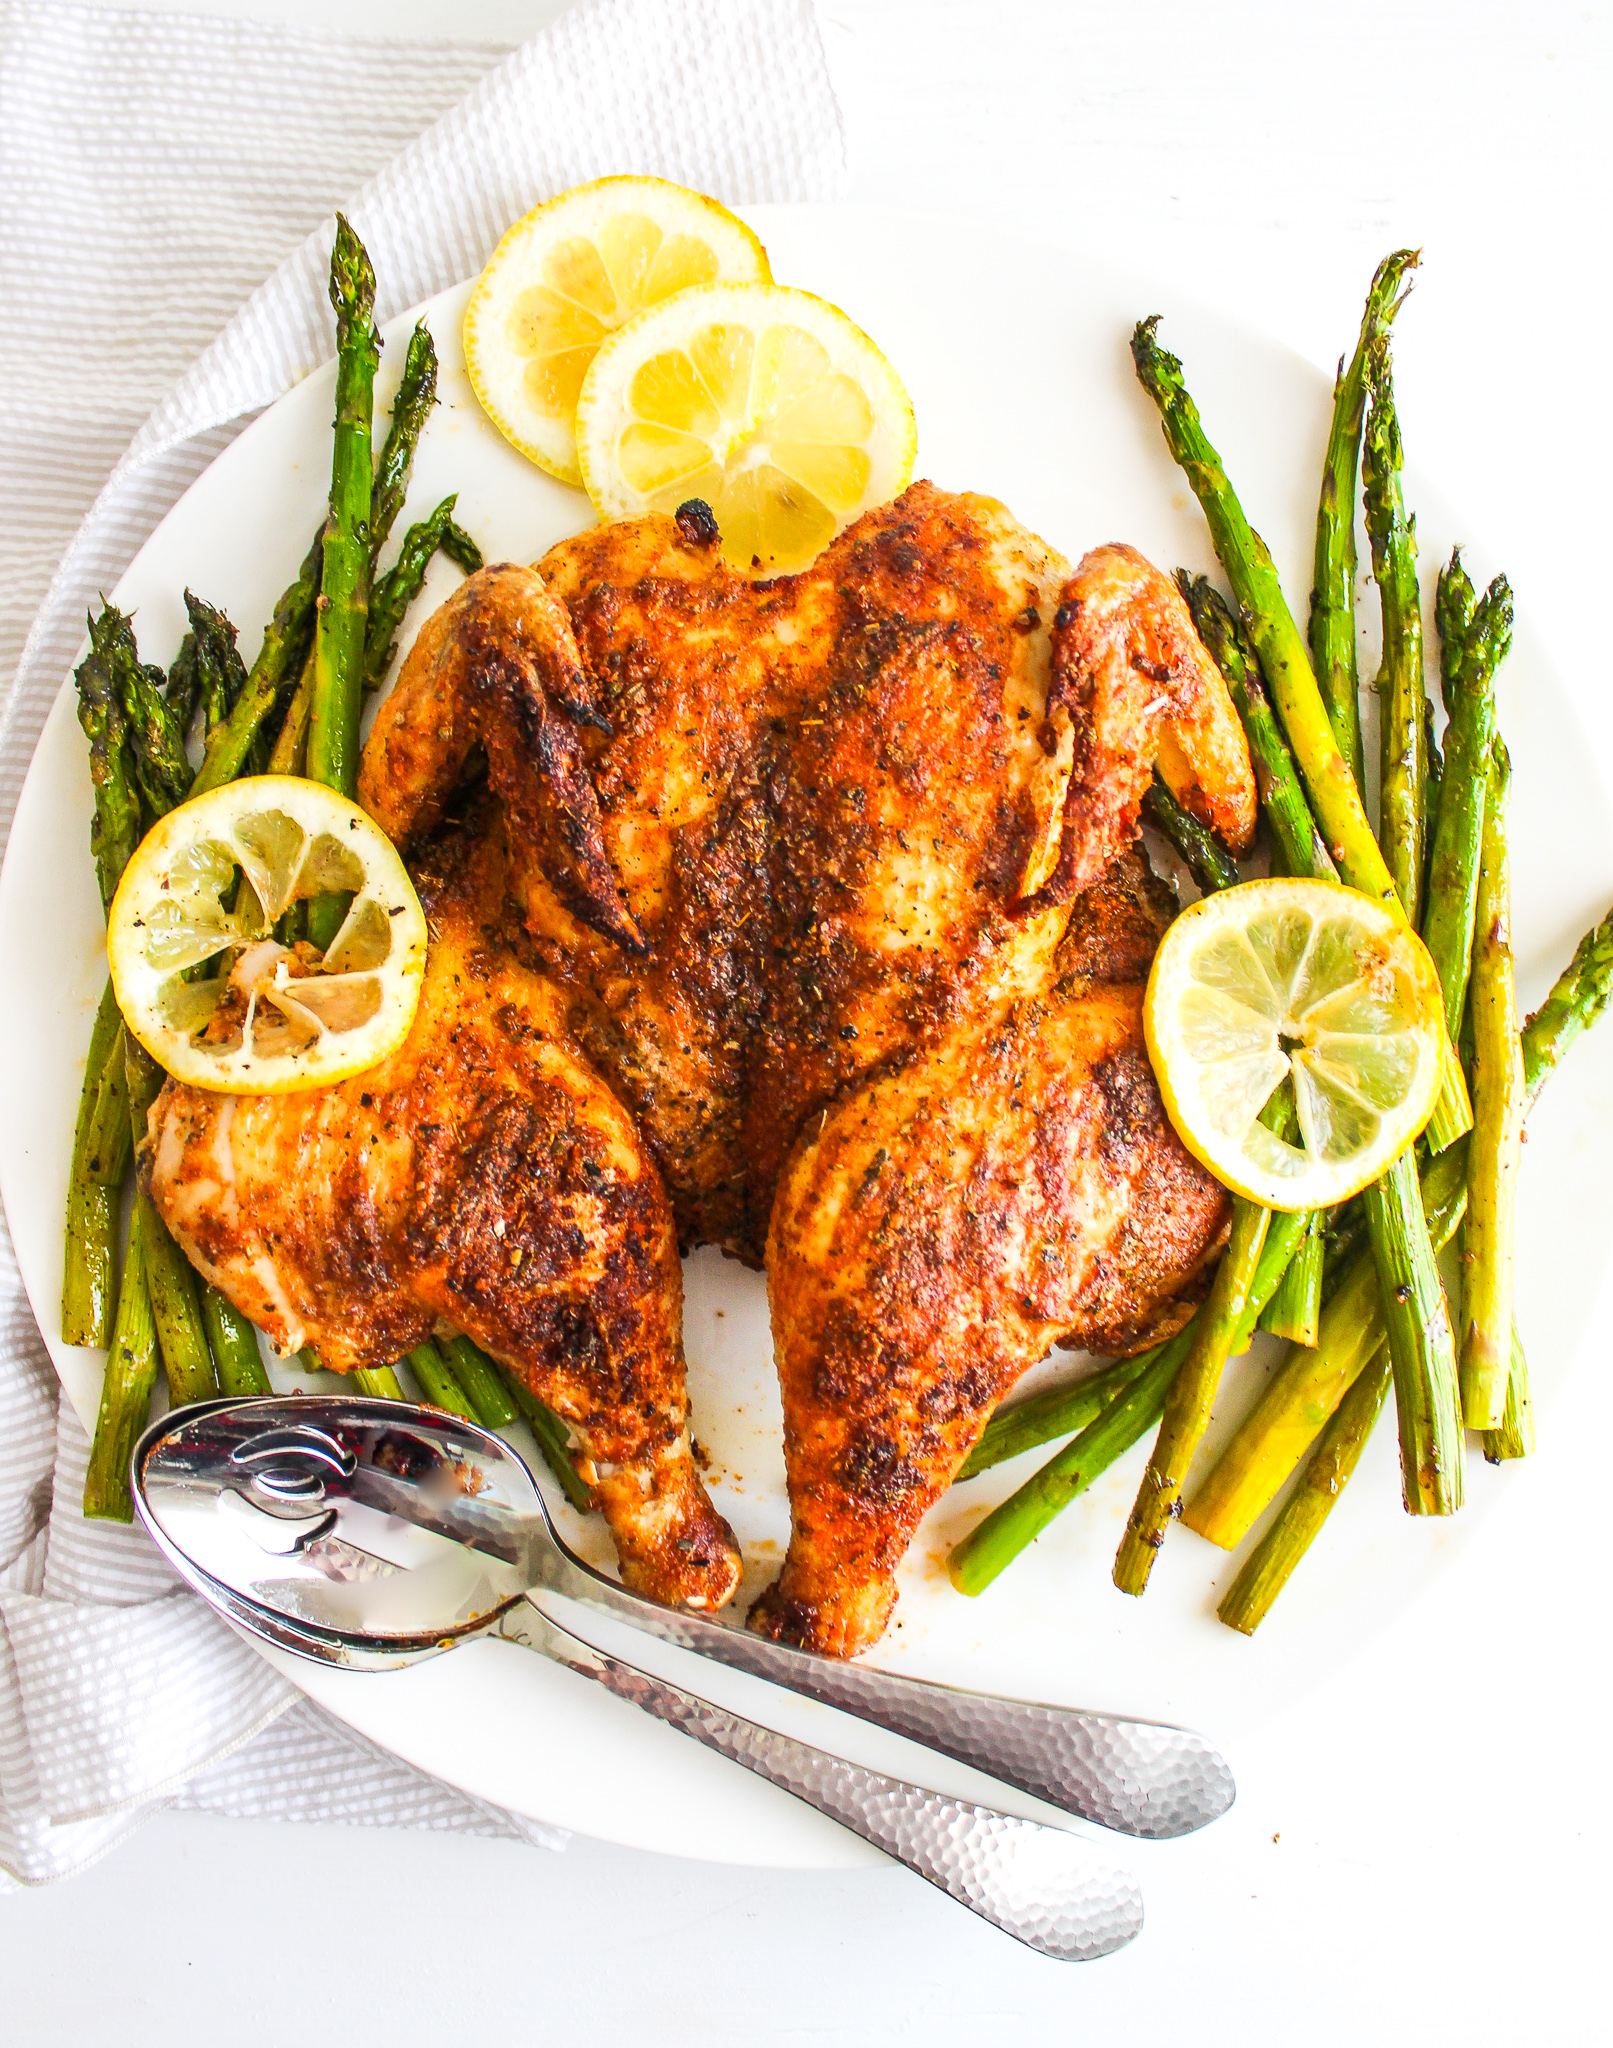 Spiced Butterflied Chicken with Asparagus